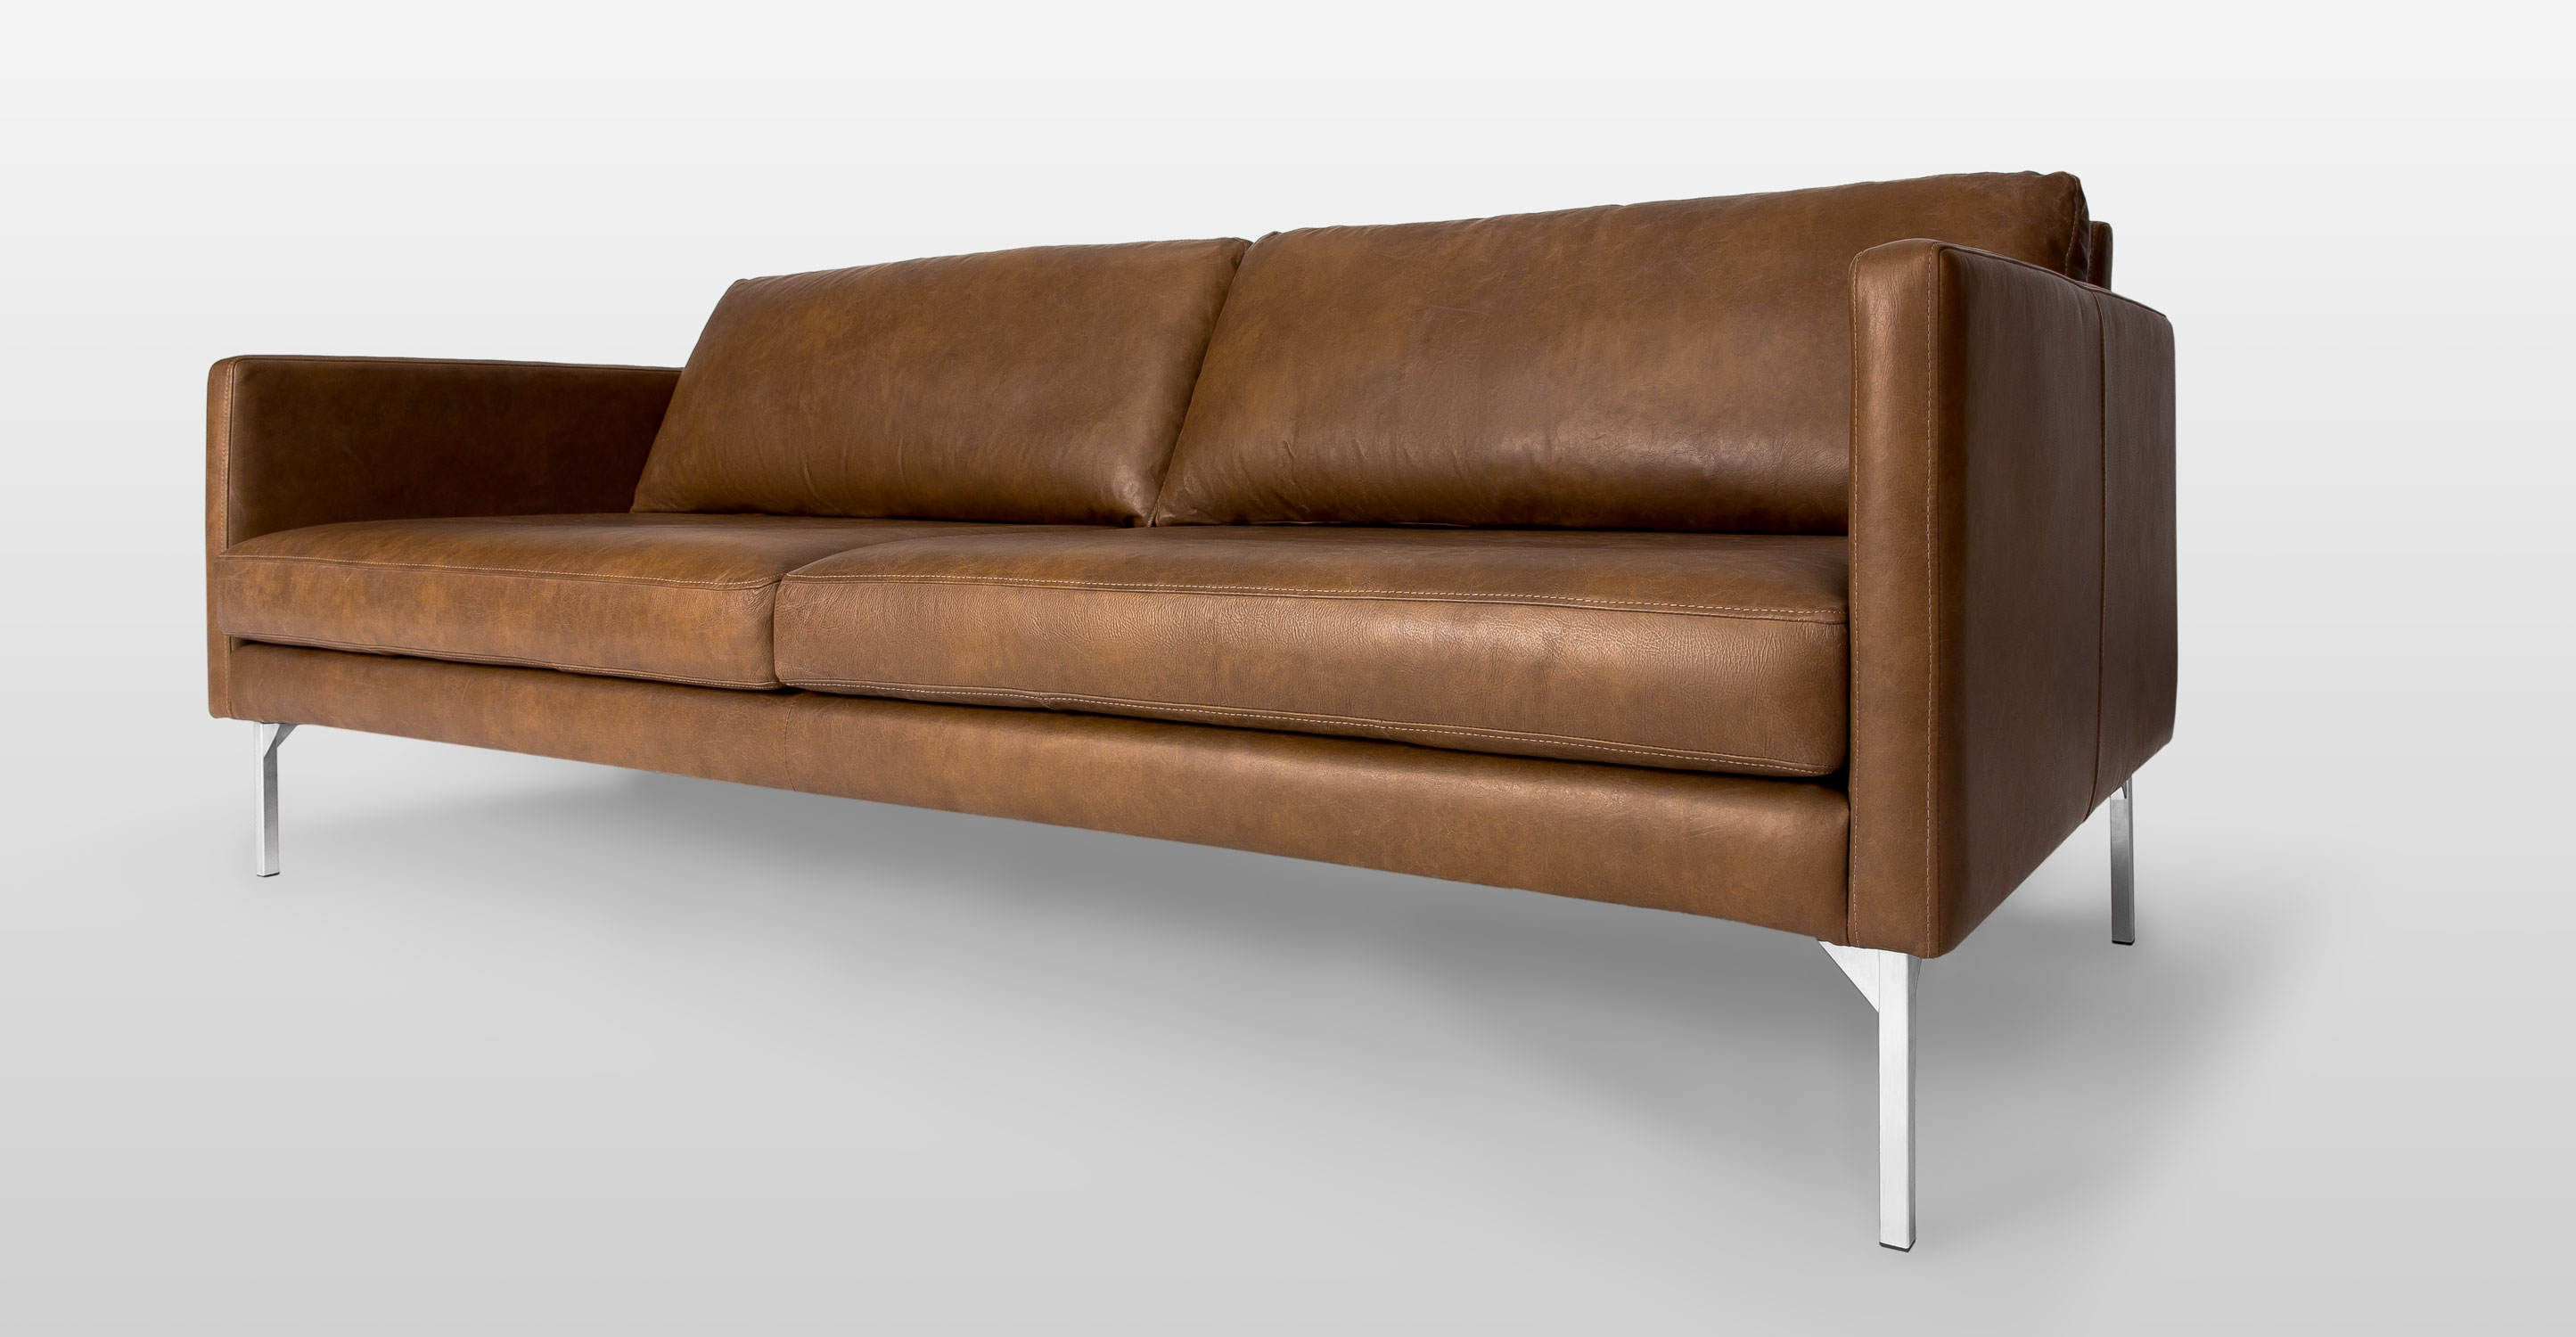 Tan Brown Leather Sofa With Steel Legs Article Echo Contemporary Regarding Oxford Sofas (Image 15 of 15)